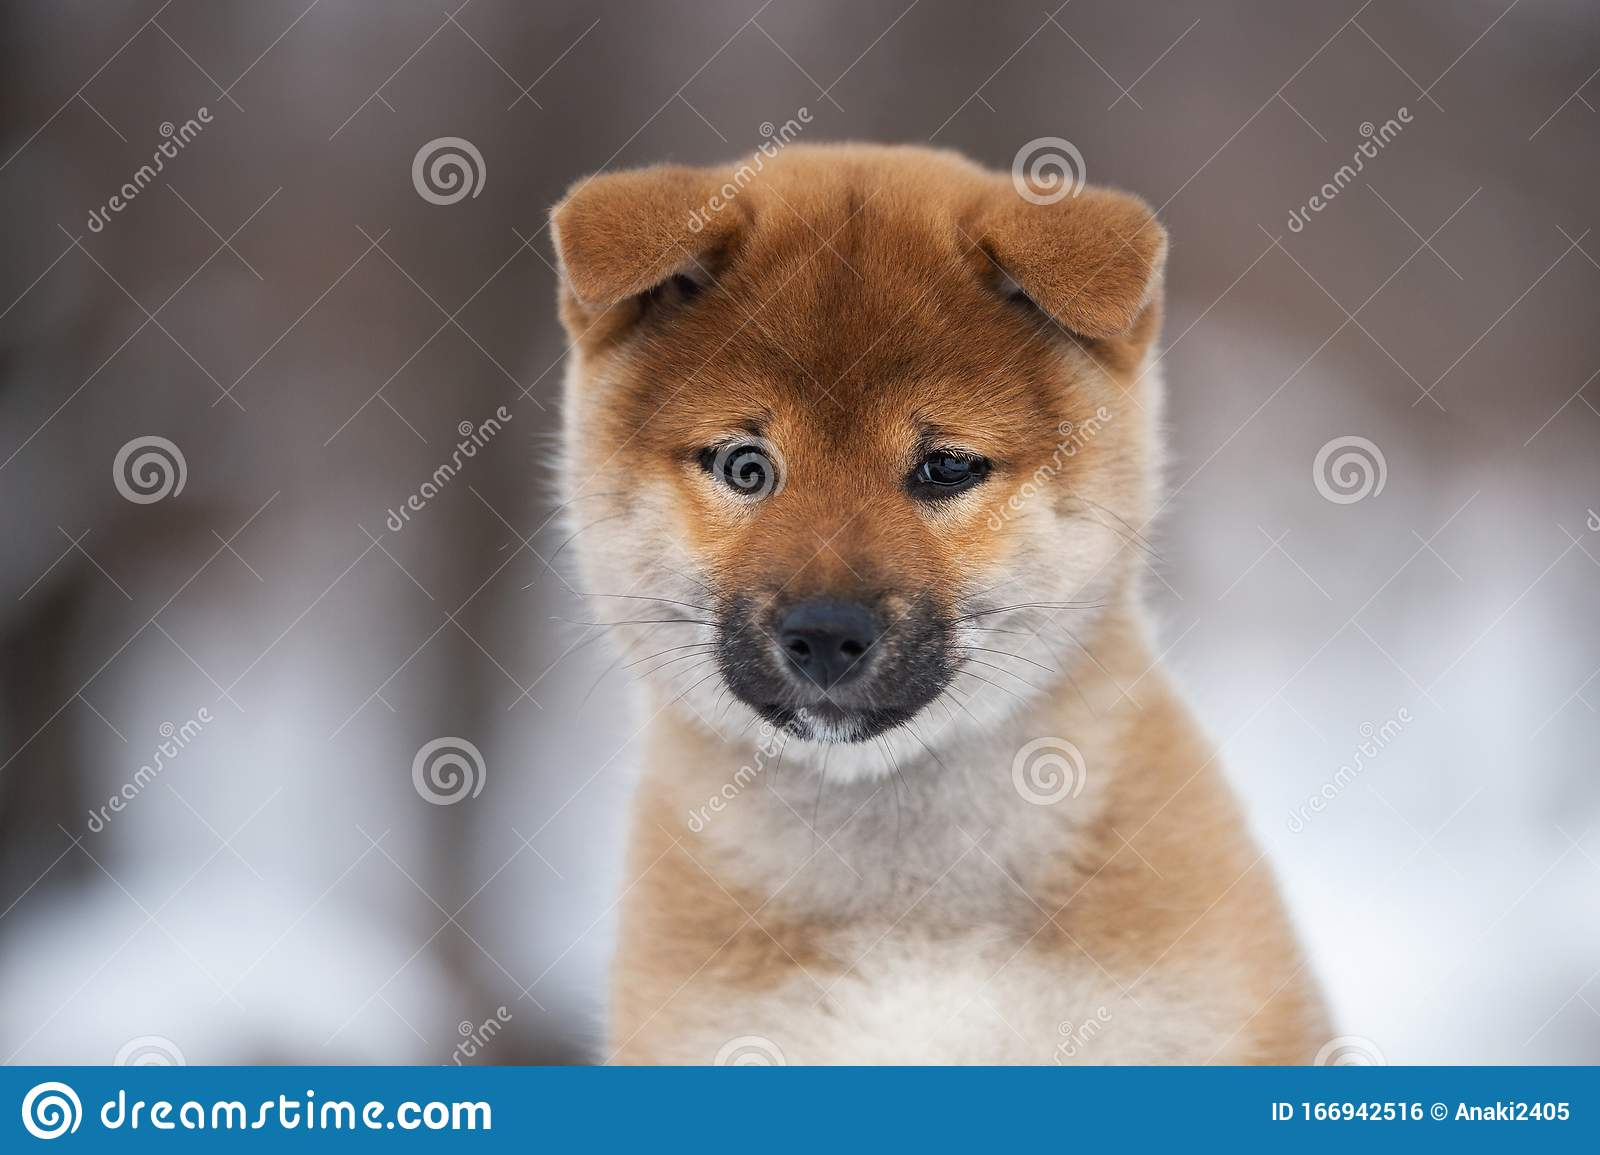 Cute Shiba Inu Puppy Sitting On A Wooden Bench In Winter Japanese Shiba Inu Dog In The Snow Stock Photo Image Of Mammal Puppy 166942516